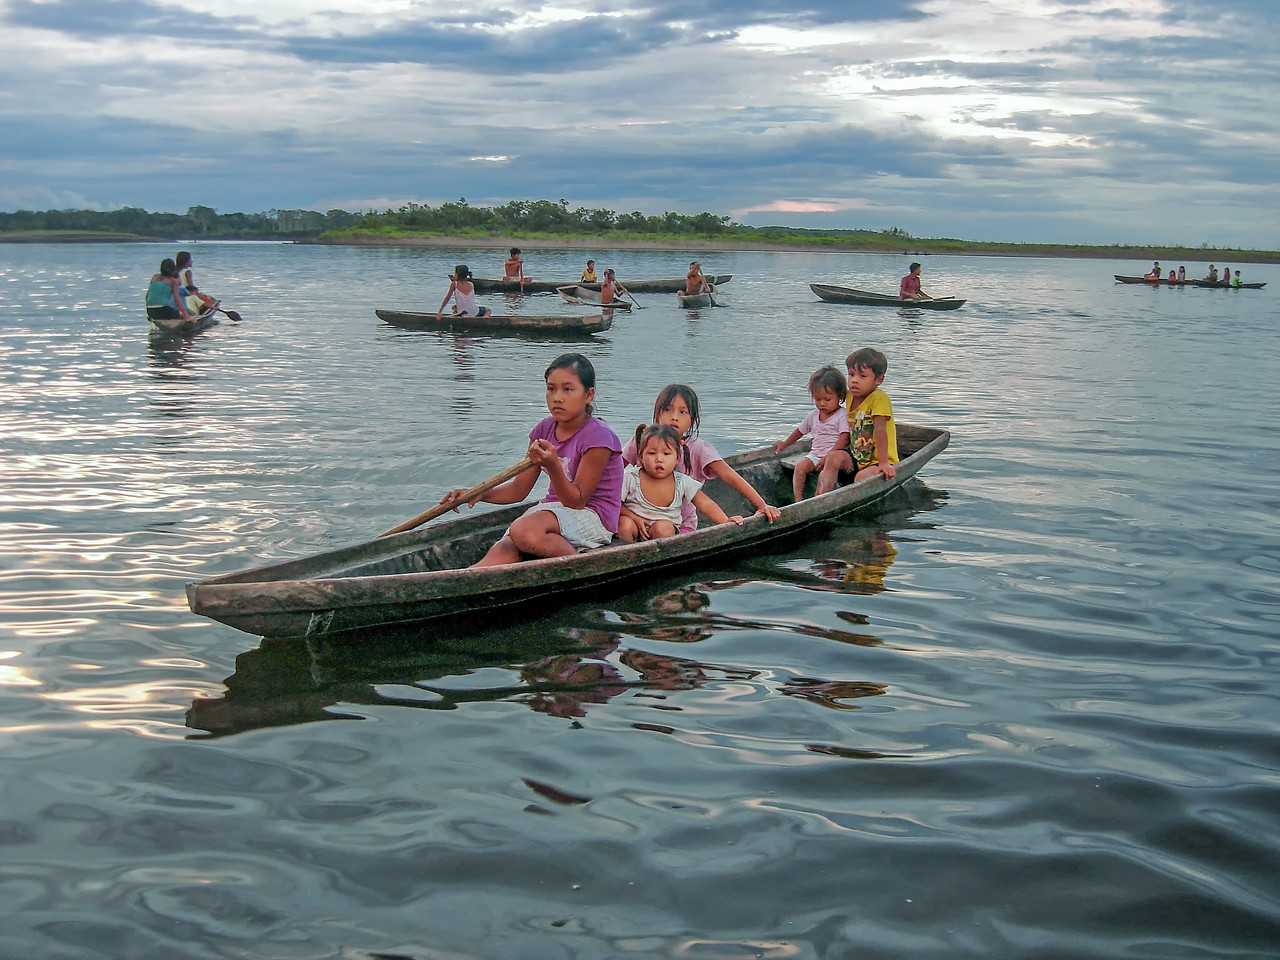 Children on the Amazon